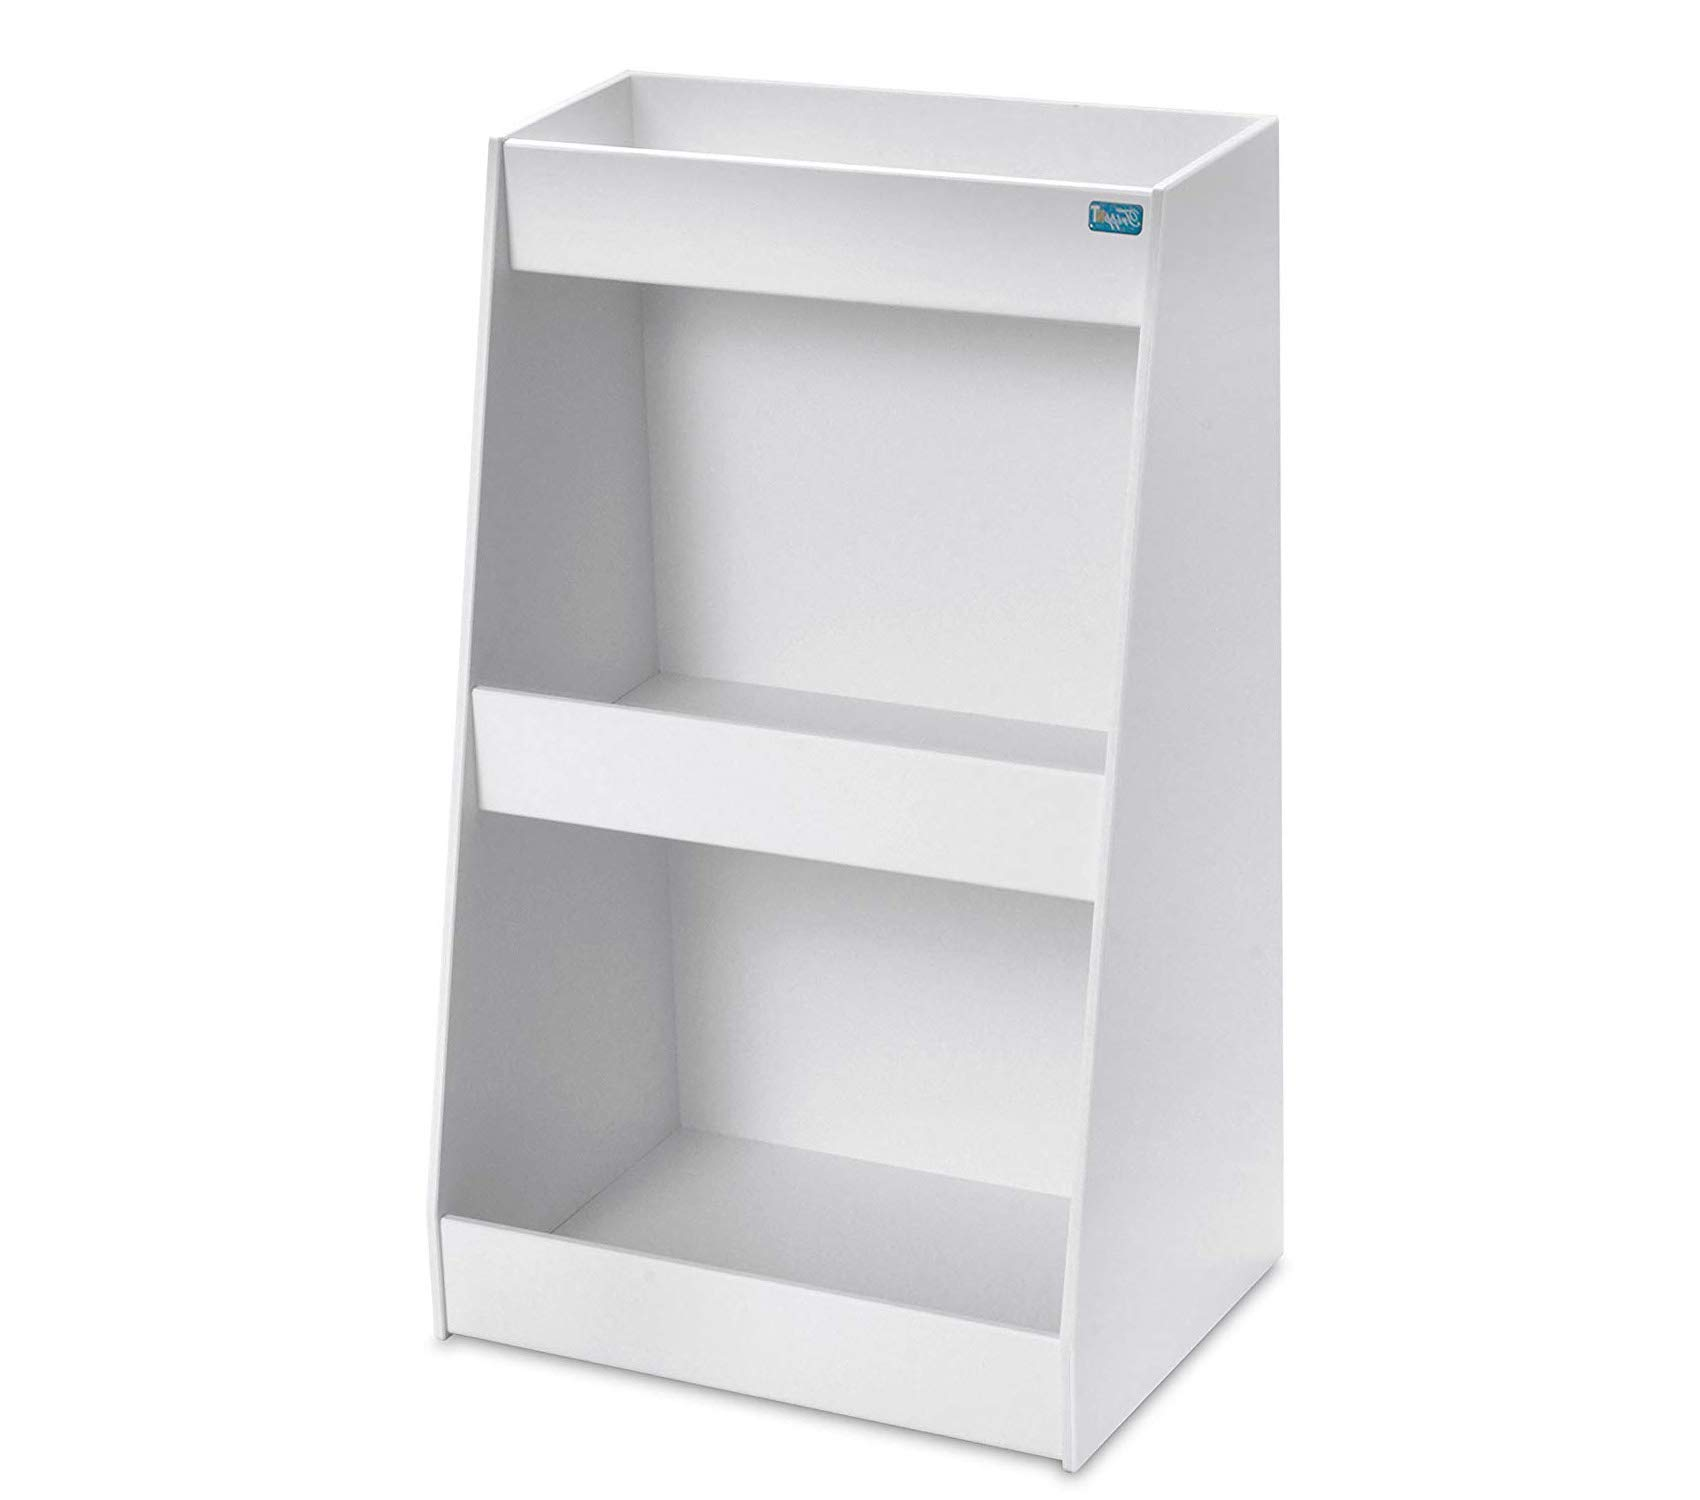 Premium PVC Angled Triple Safety Shelves with No Door 12'' Width x 20'' Height x 9'' Depth White Storage